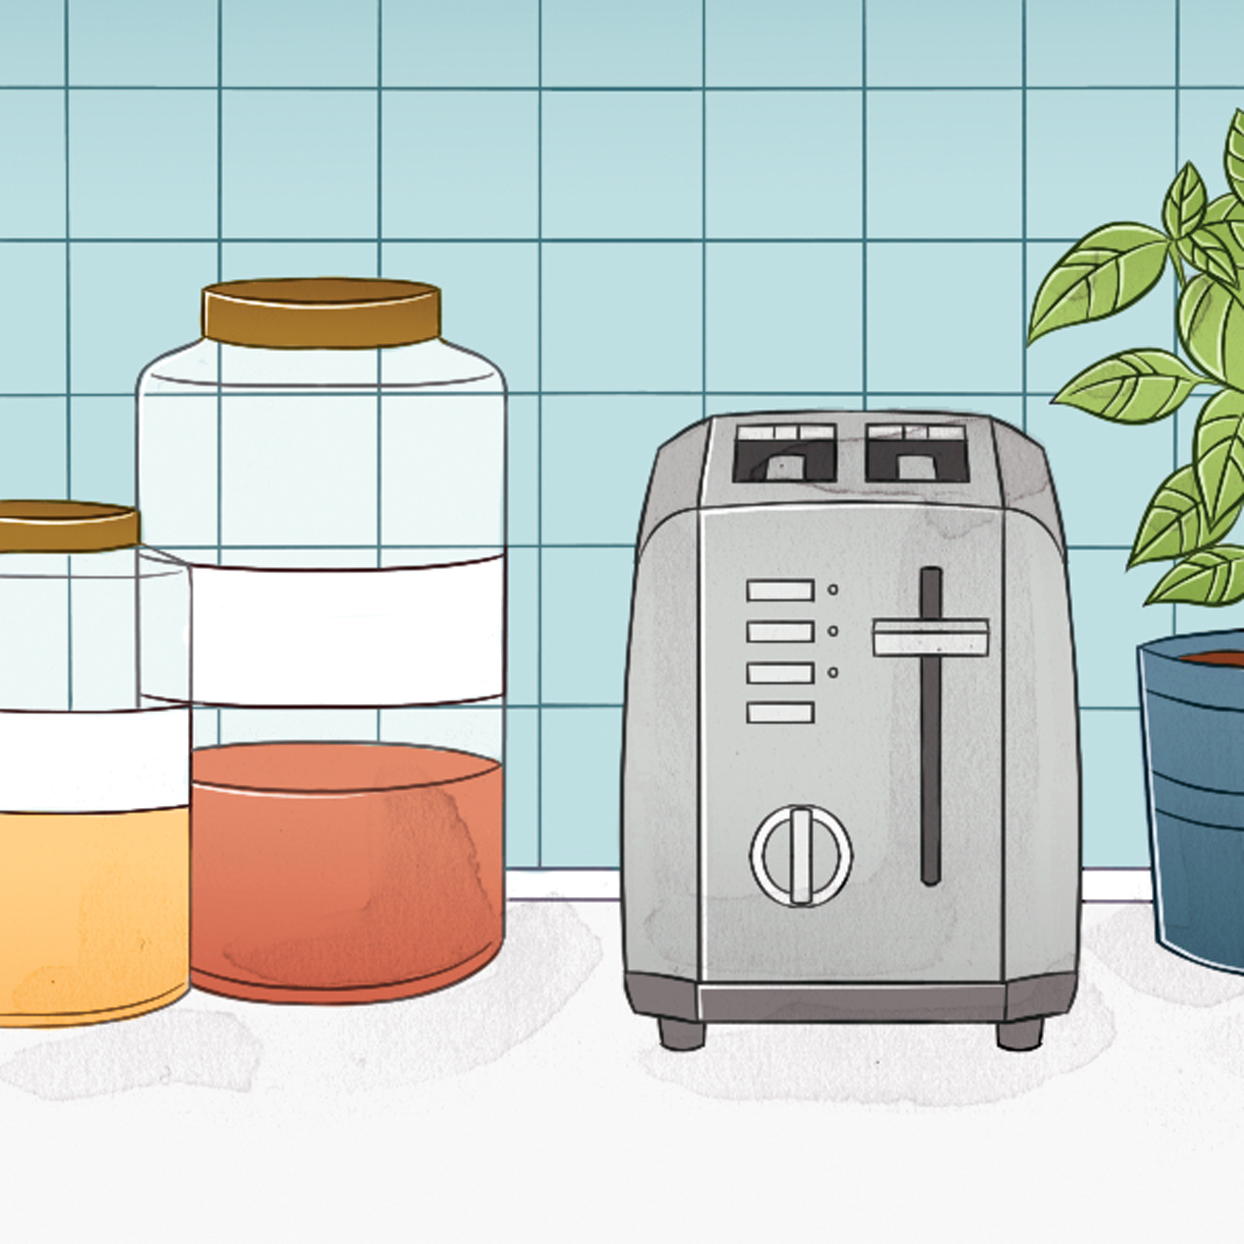 toaster and jars on counter illustration